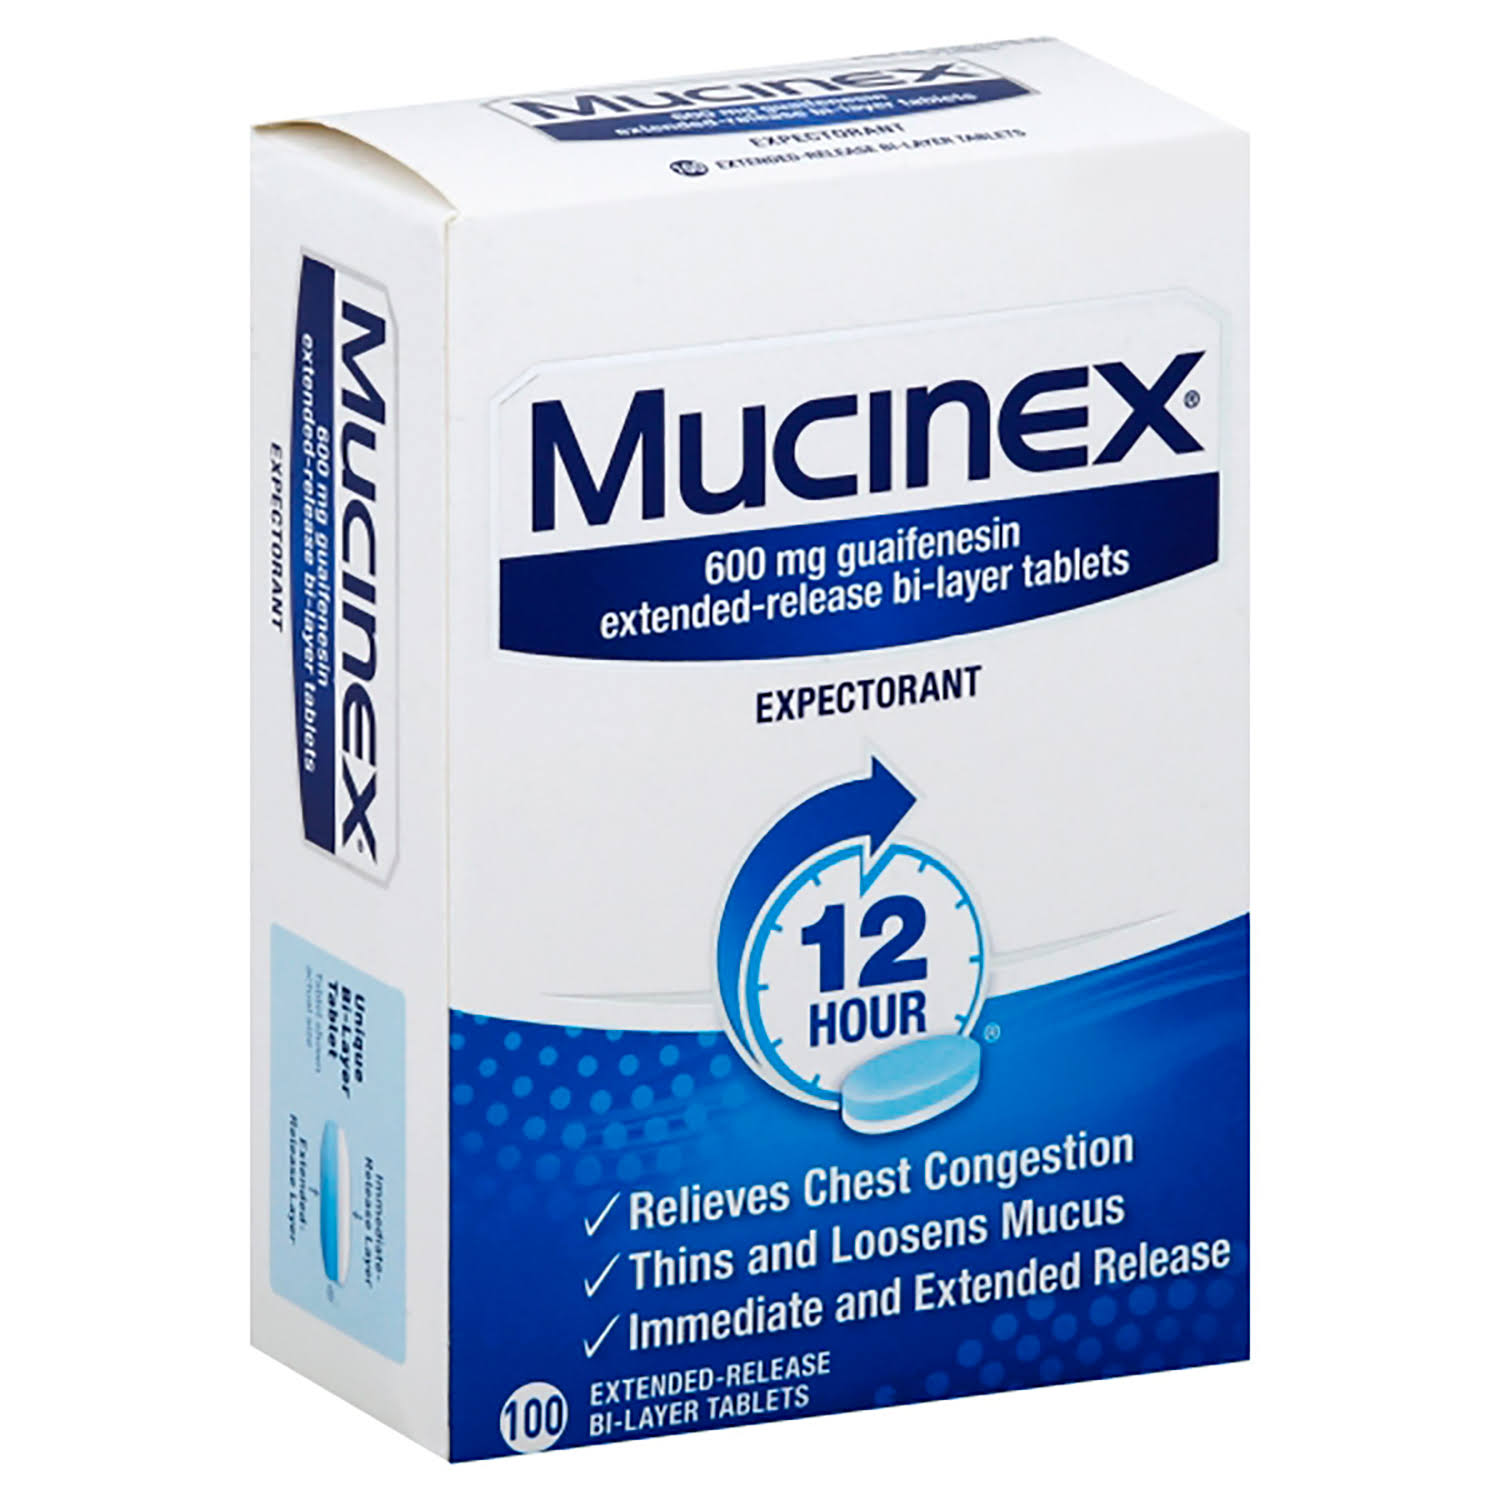 Mucinex Expectorant - 600mg, 100ct